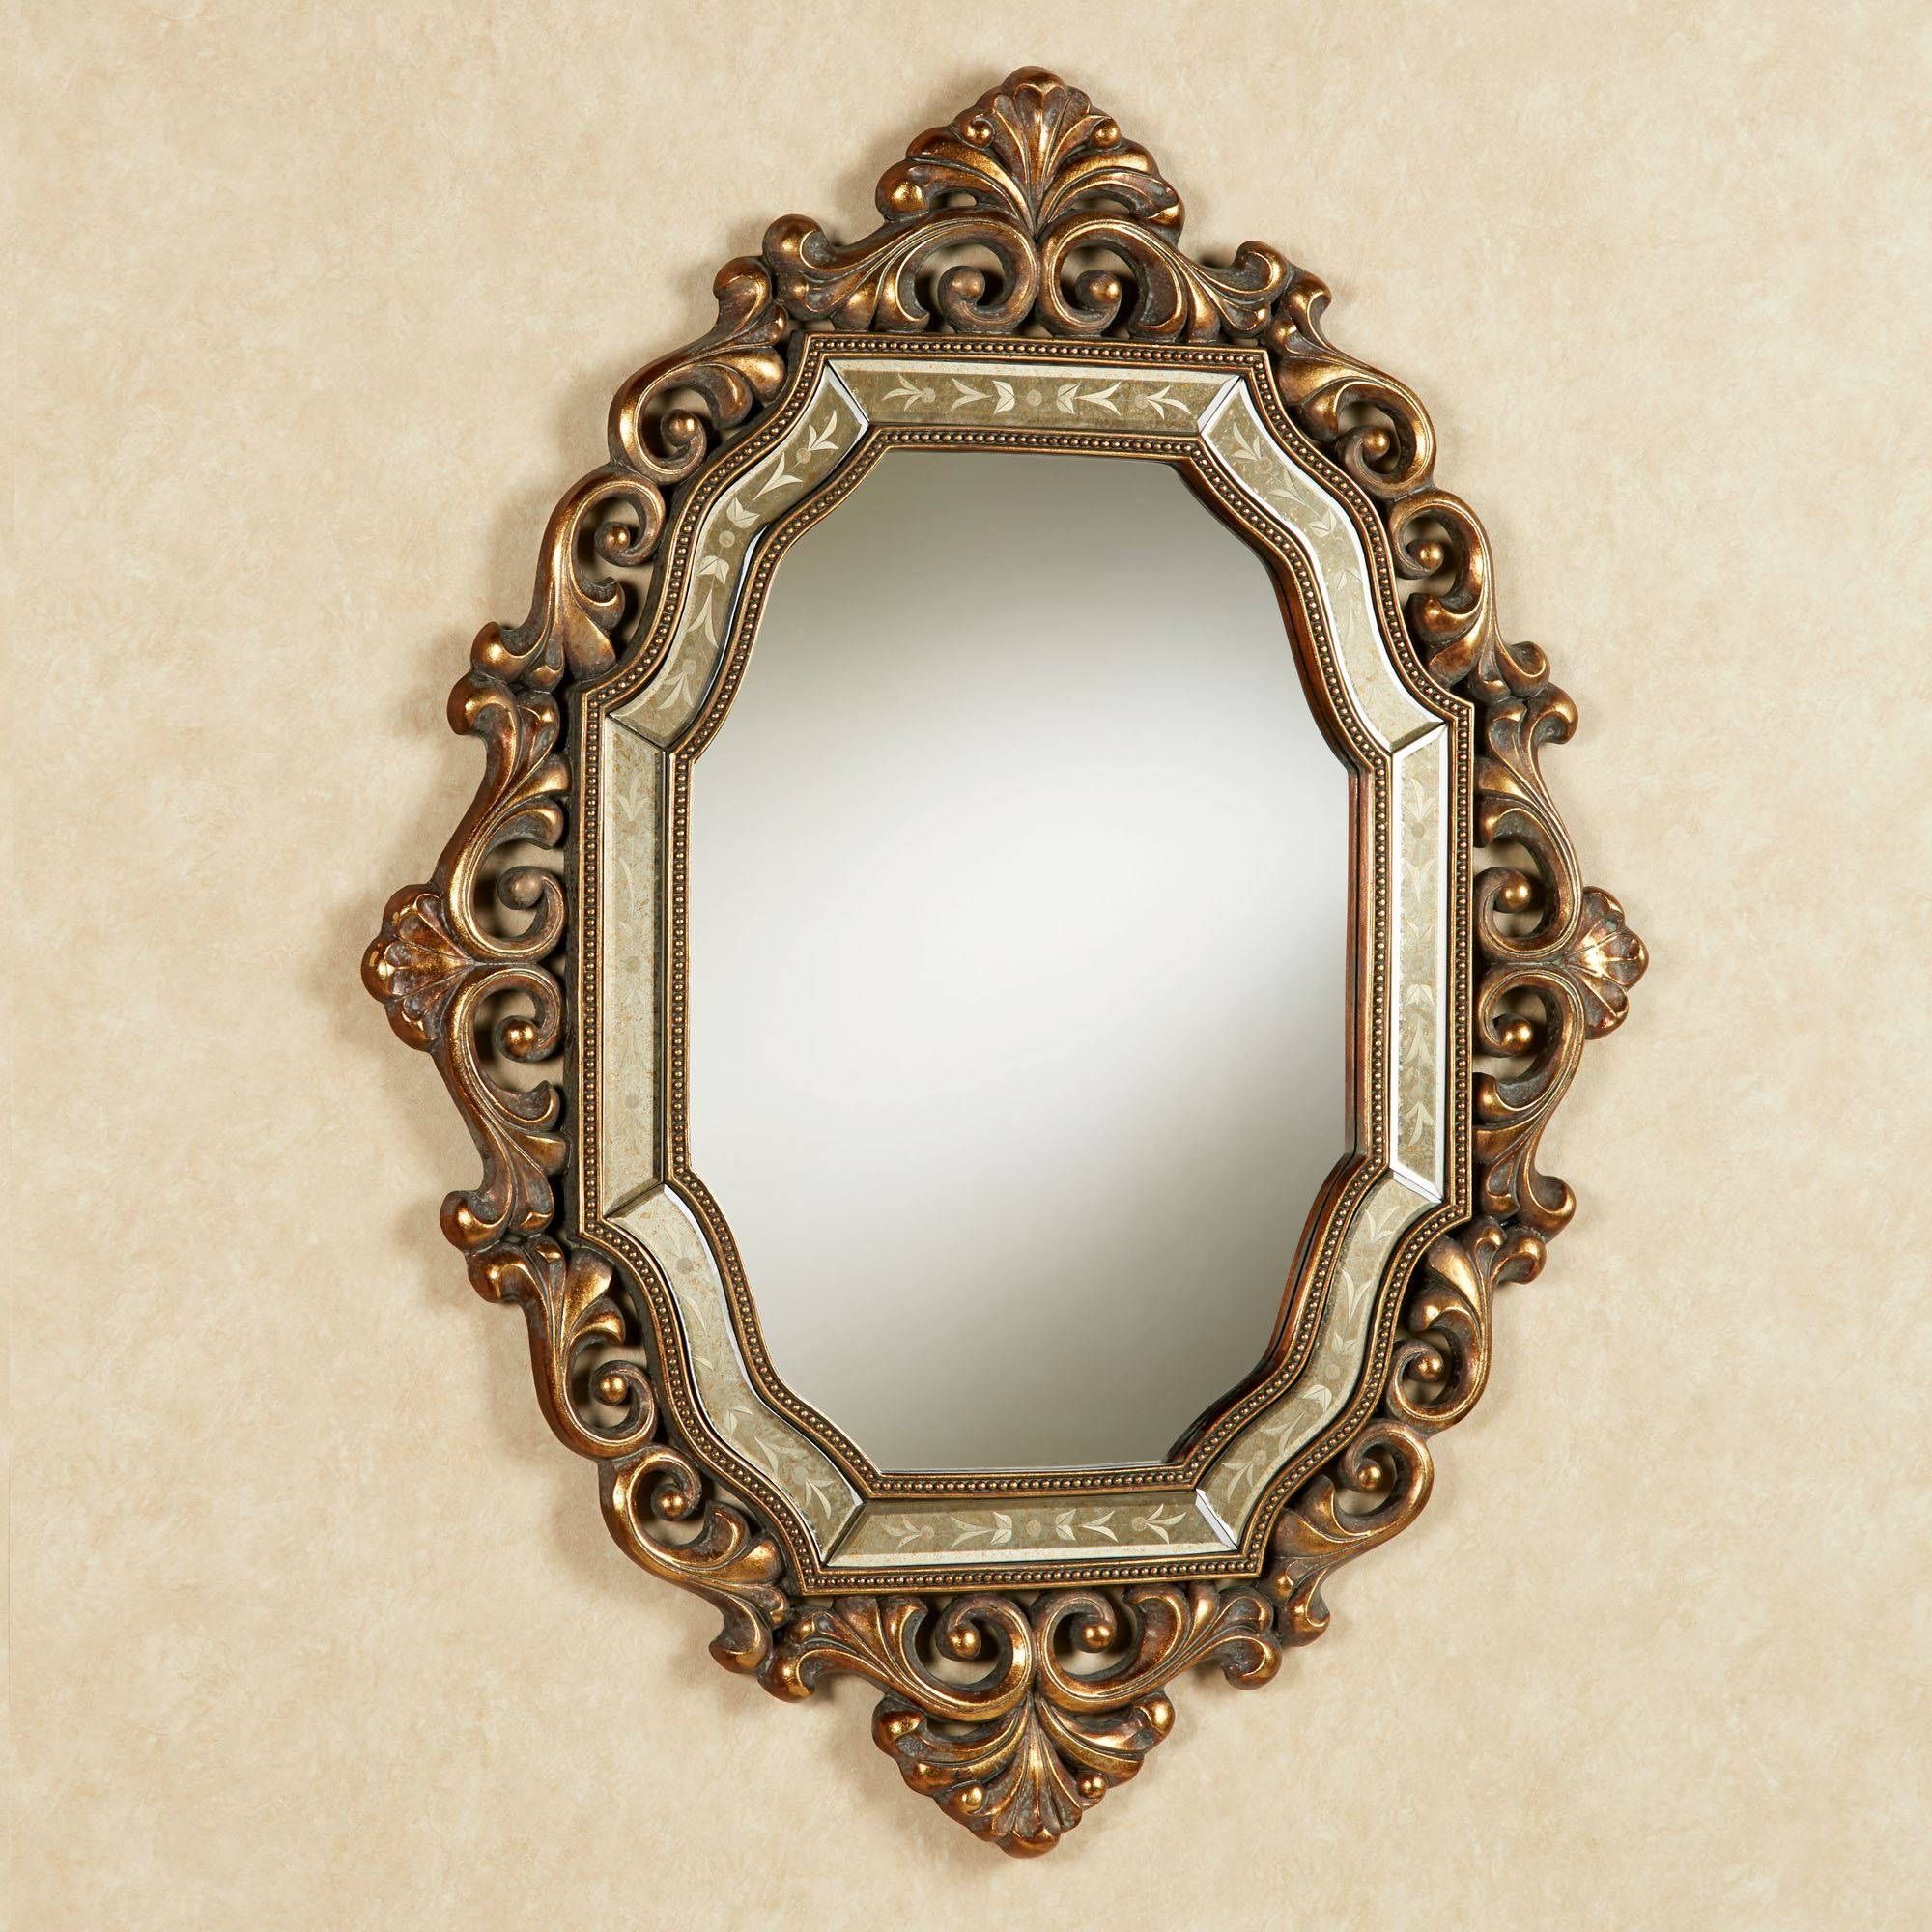 Verena Old World Wall Mirror with Antique Wall Mirrors (Image 15 of 15)